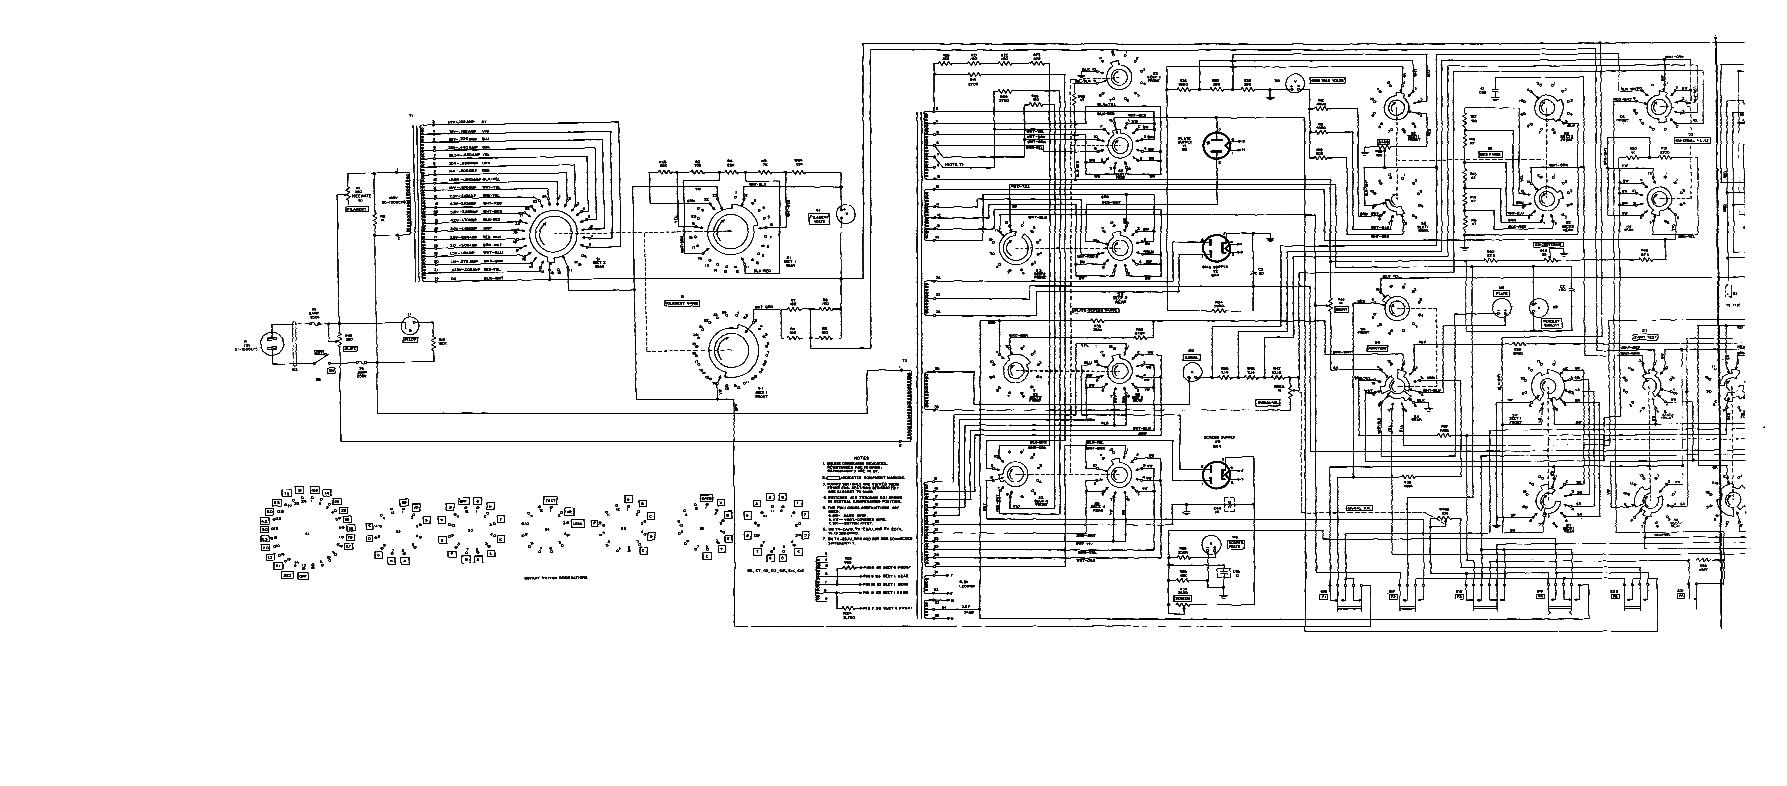 Electronic Circuit Boards Sdvr8jat V10 Schematic Diagrams Zapper Diagram Bing Images Board For Plc And